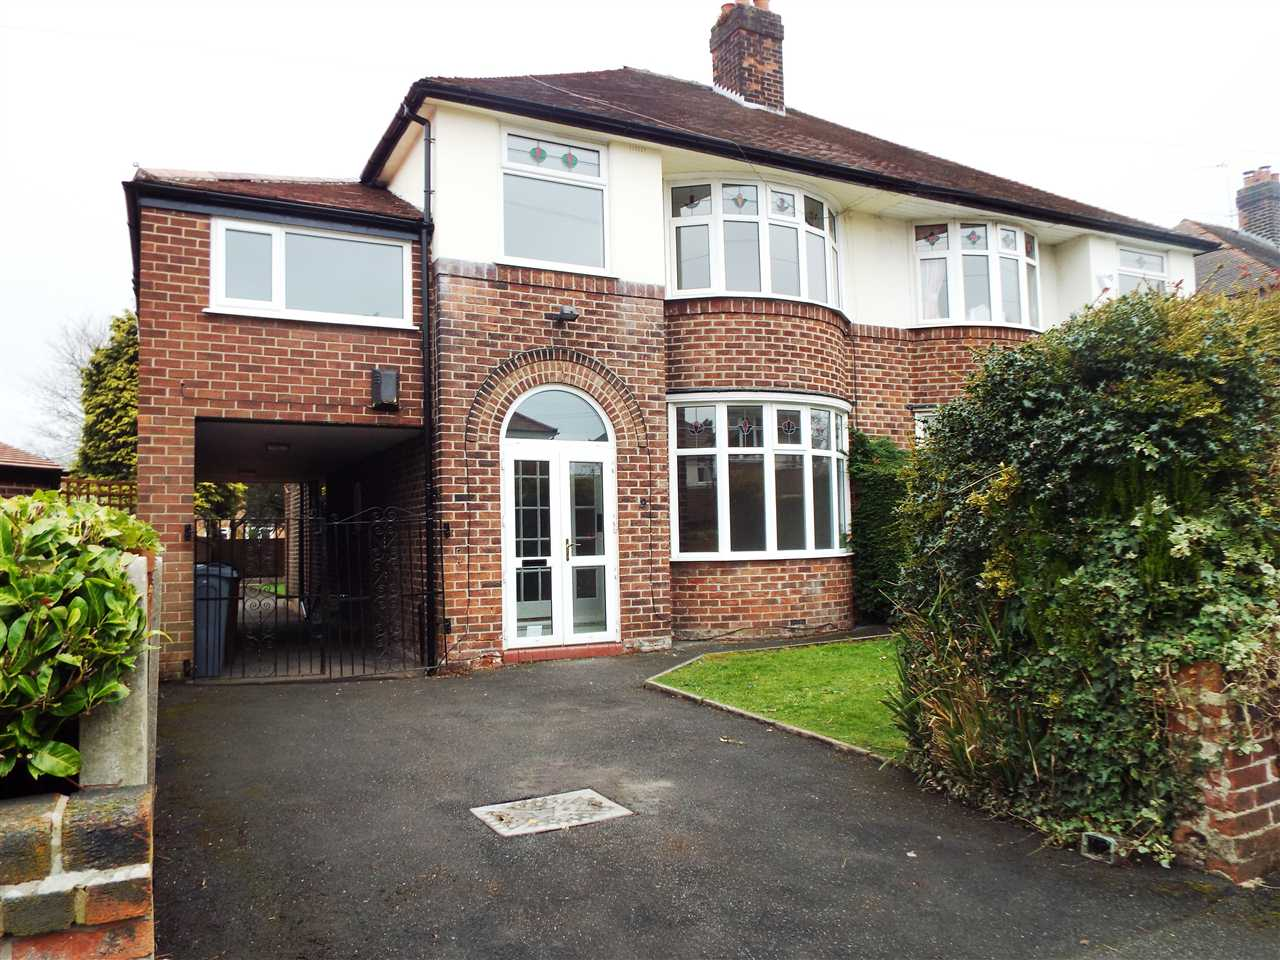 5 bed semi-detached to rent in Ferndene Road, Didsbury, Manchester, M20